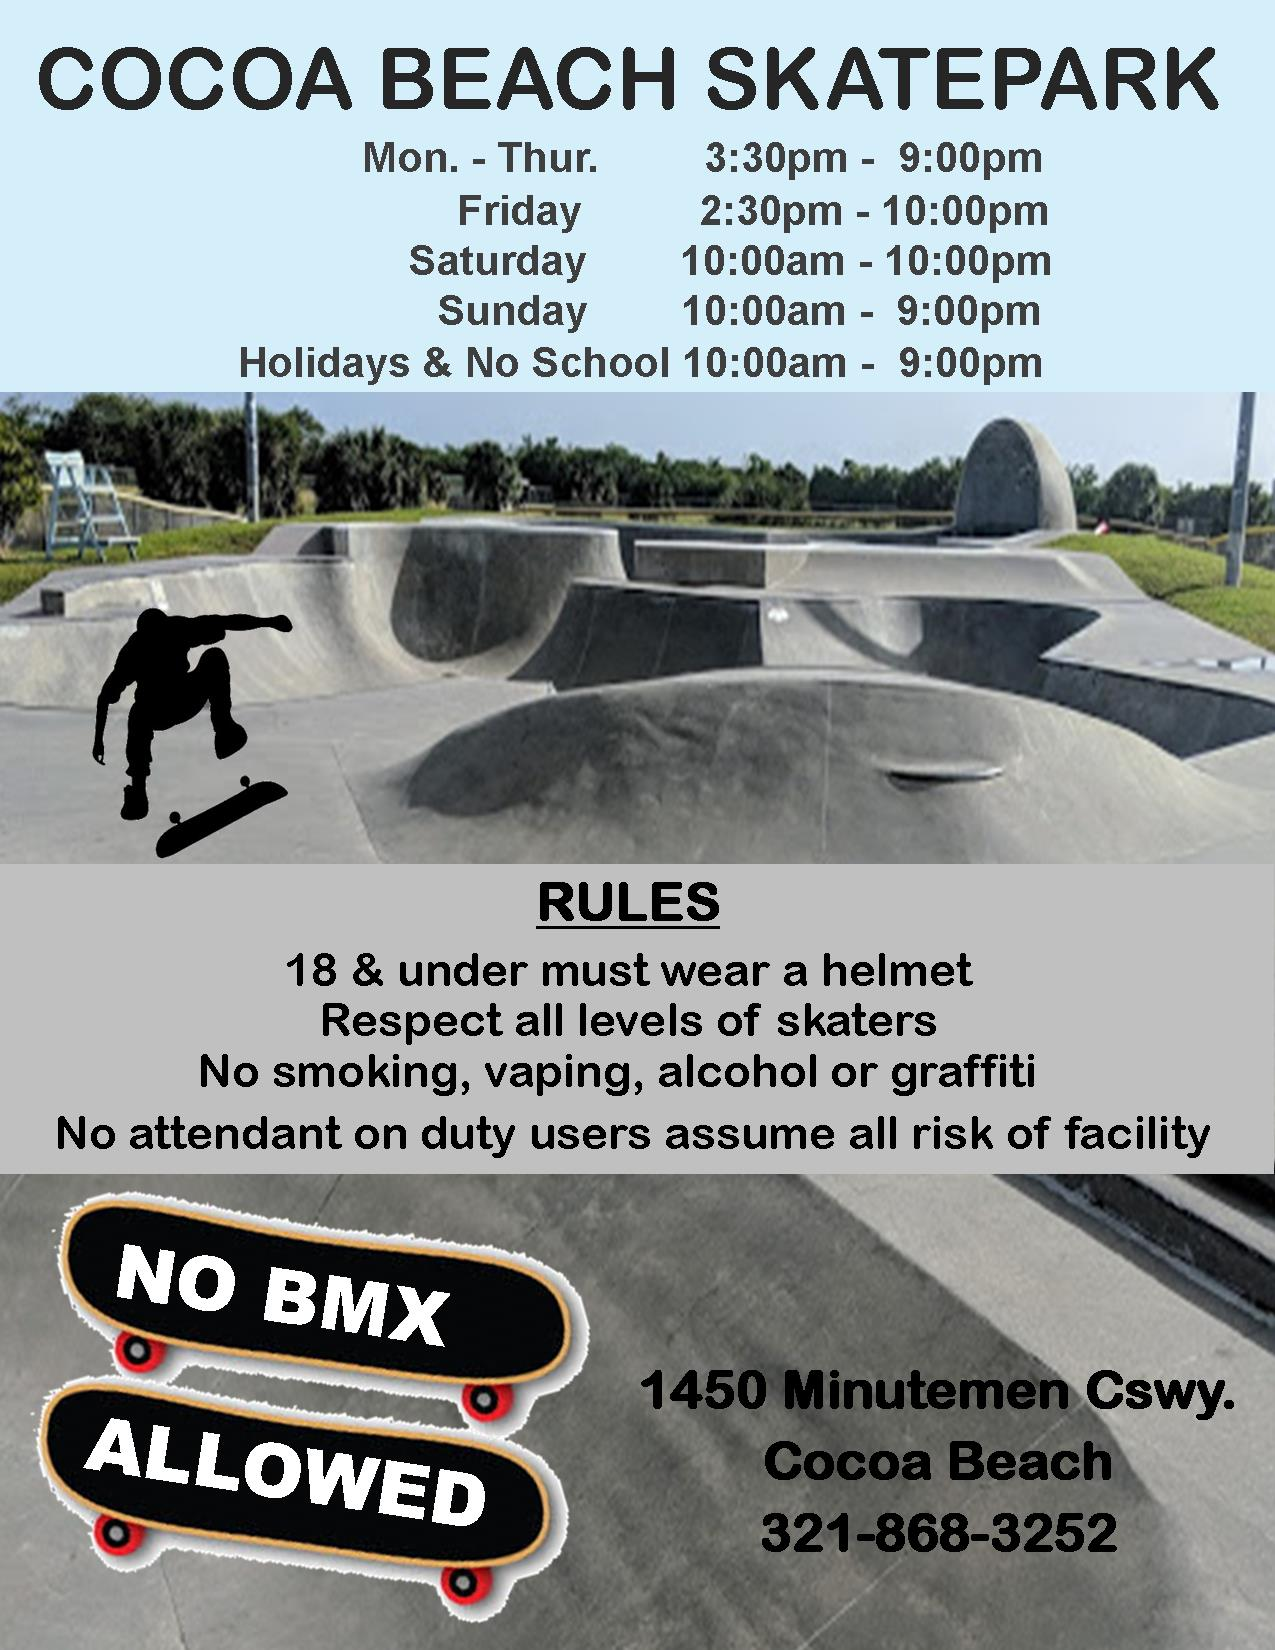 Skatepark hours and rules - Information found on Skate Park Page